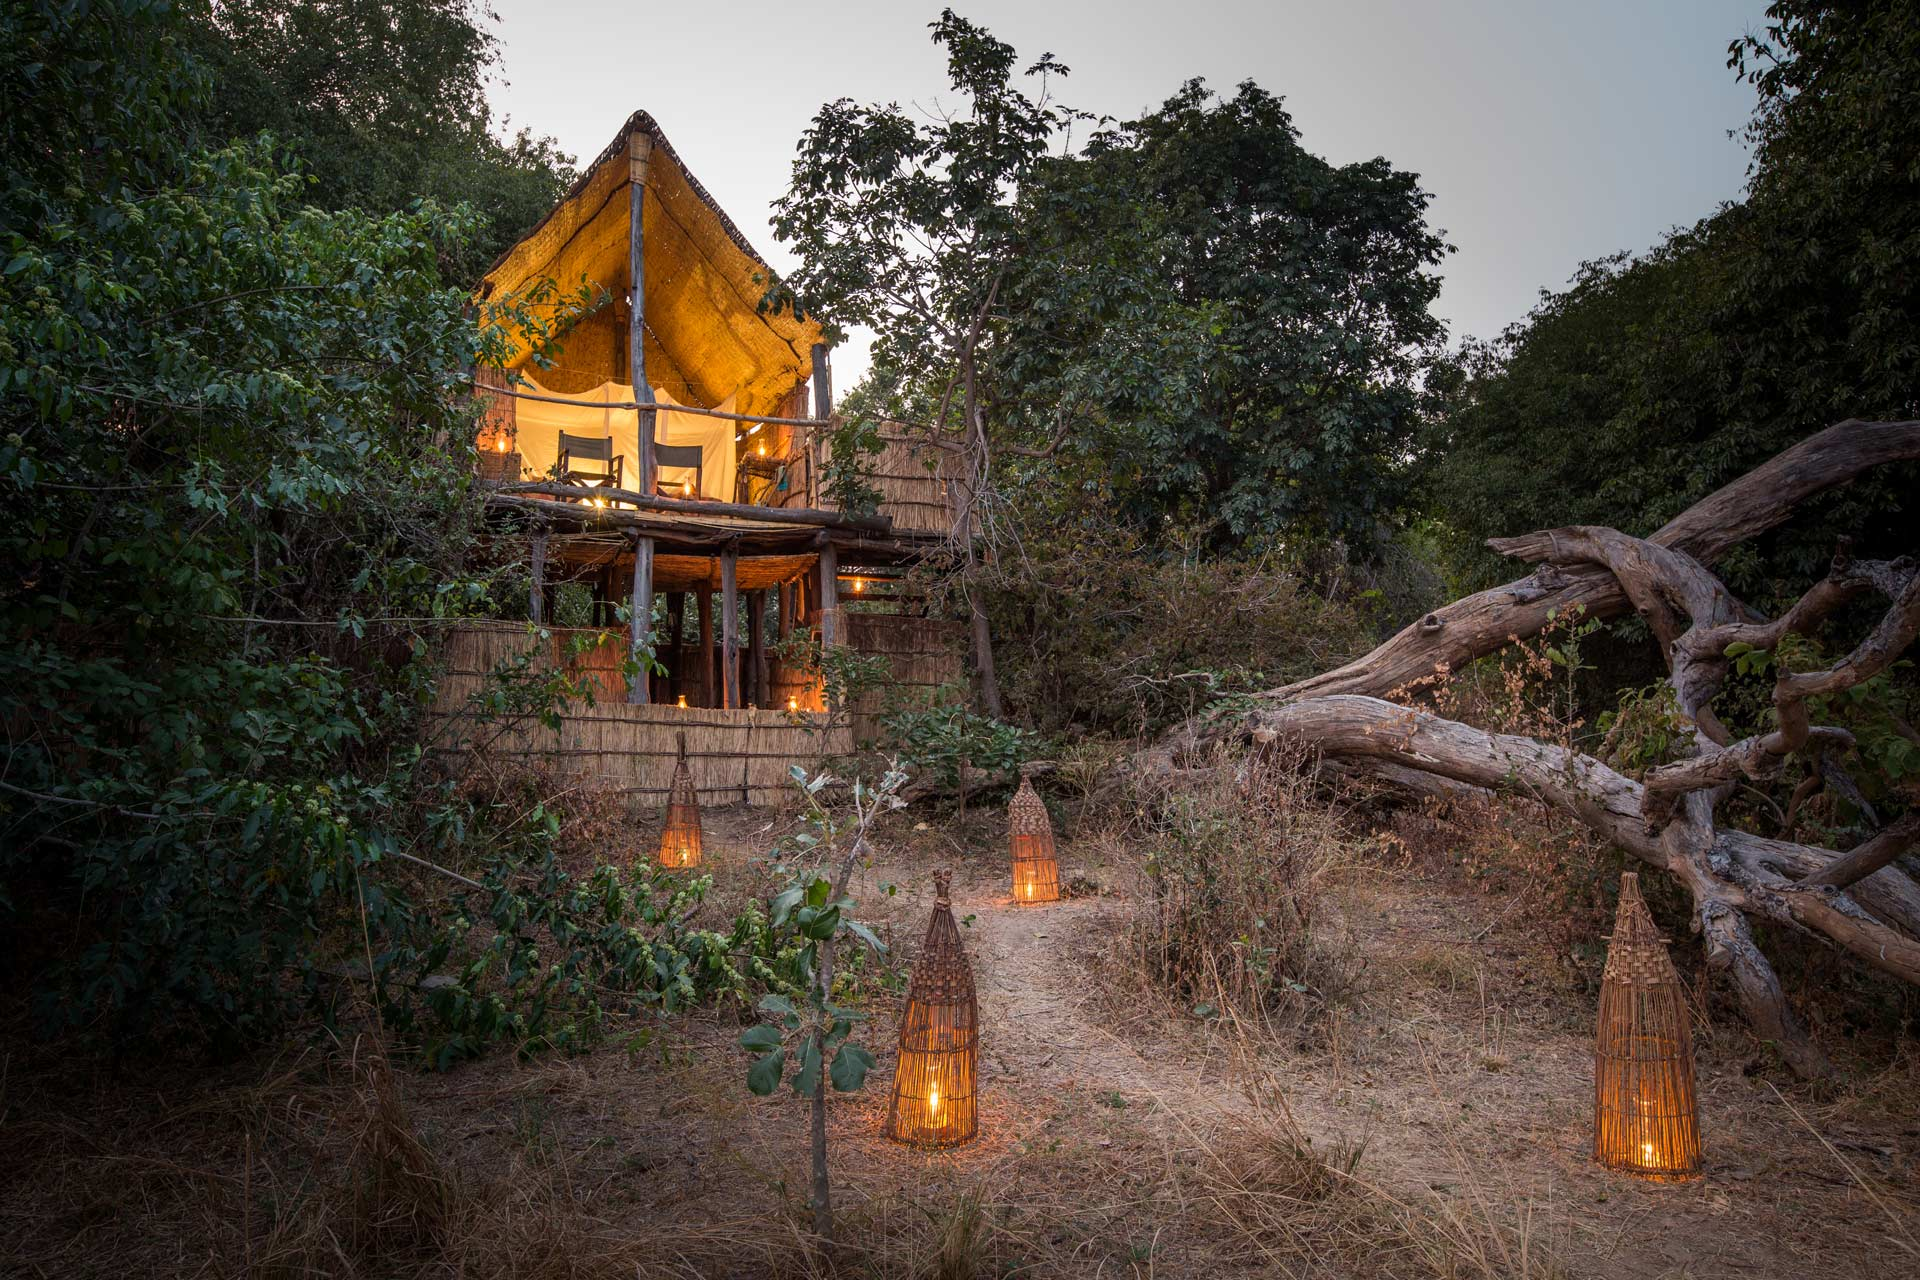 A tree house with an open plan view of Chikoko Trails Camp on the west bank of South Luangwa National Park in Zambia